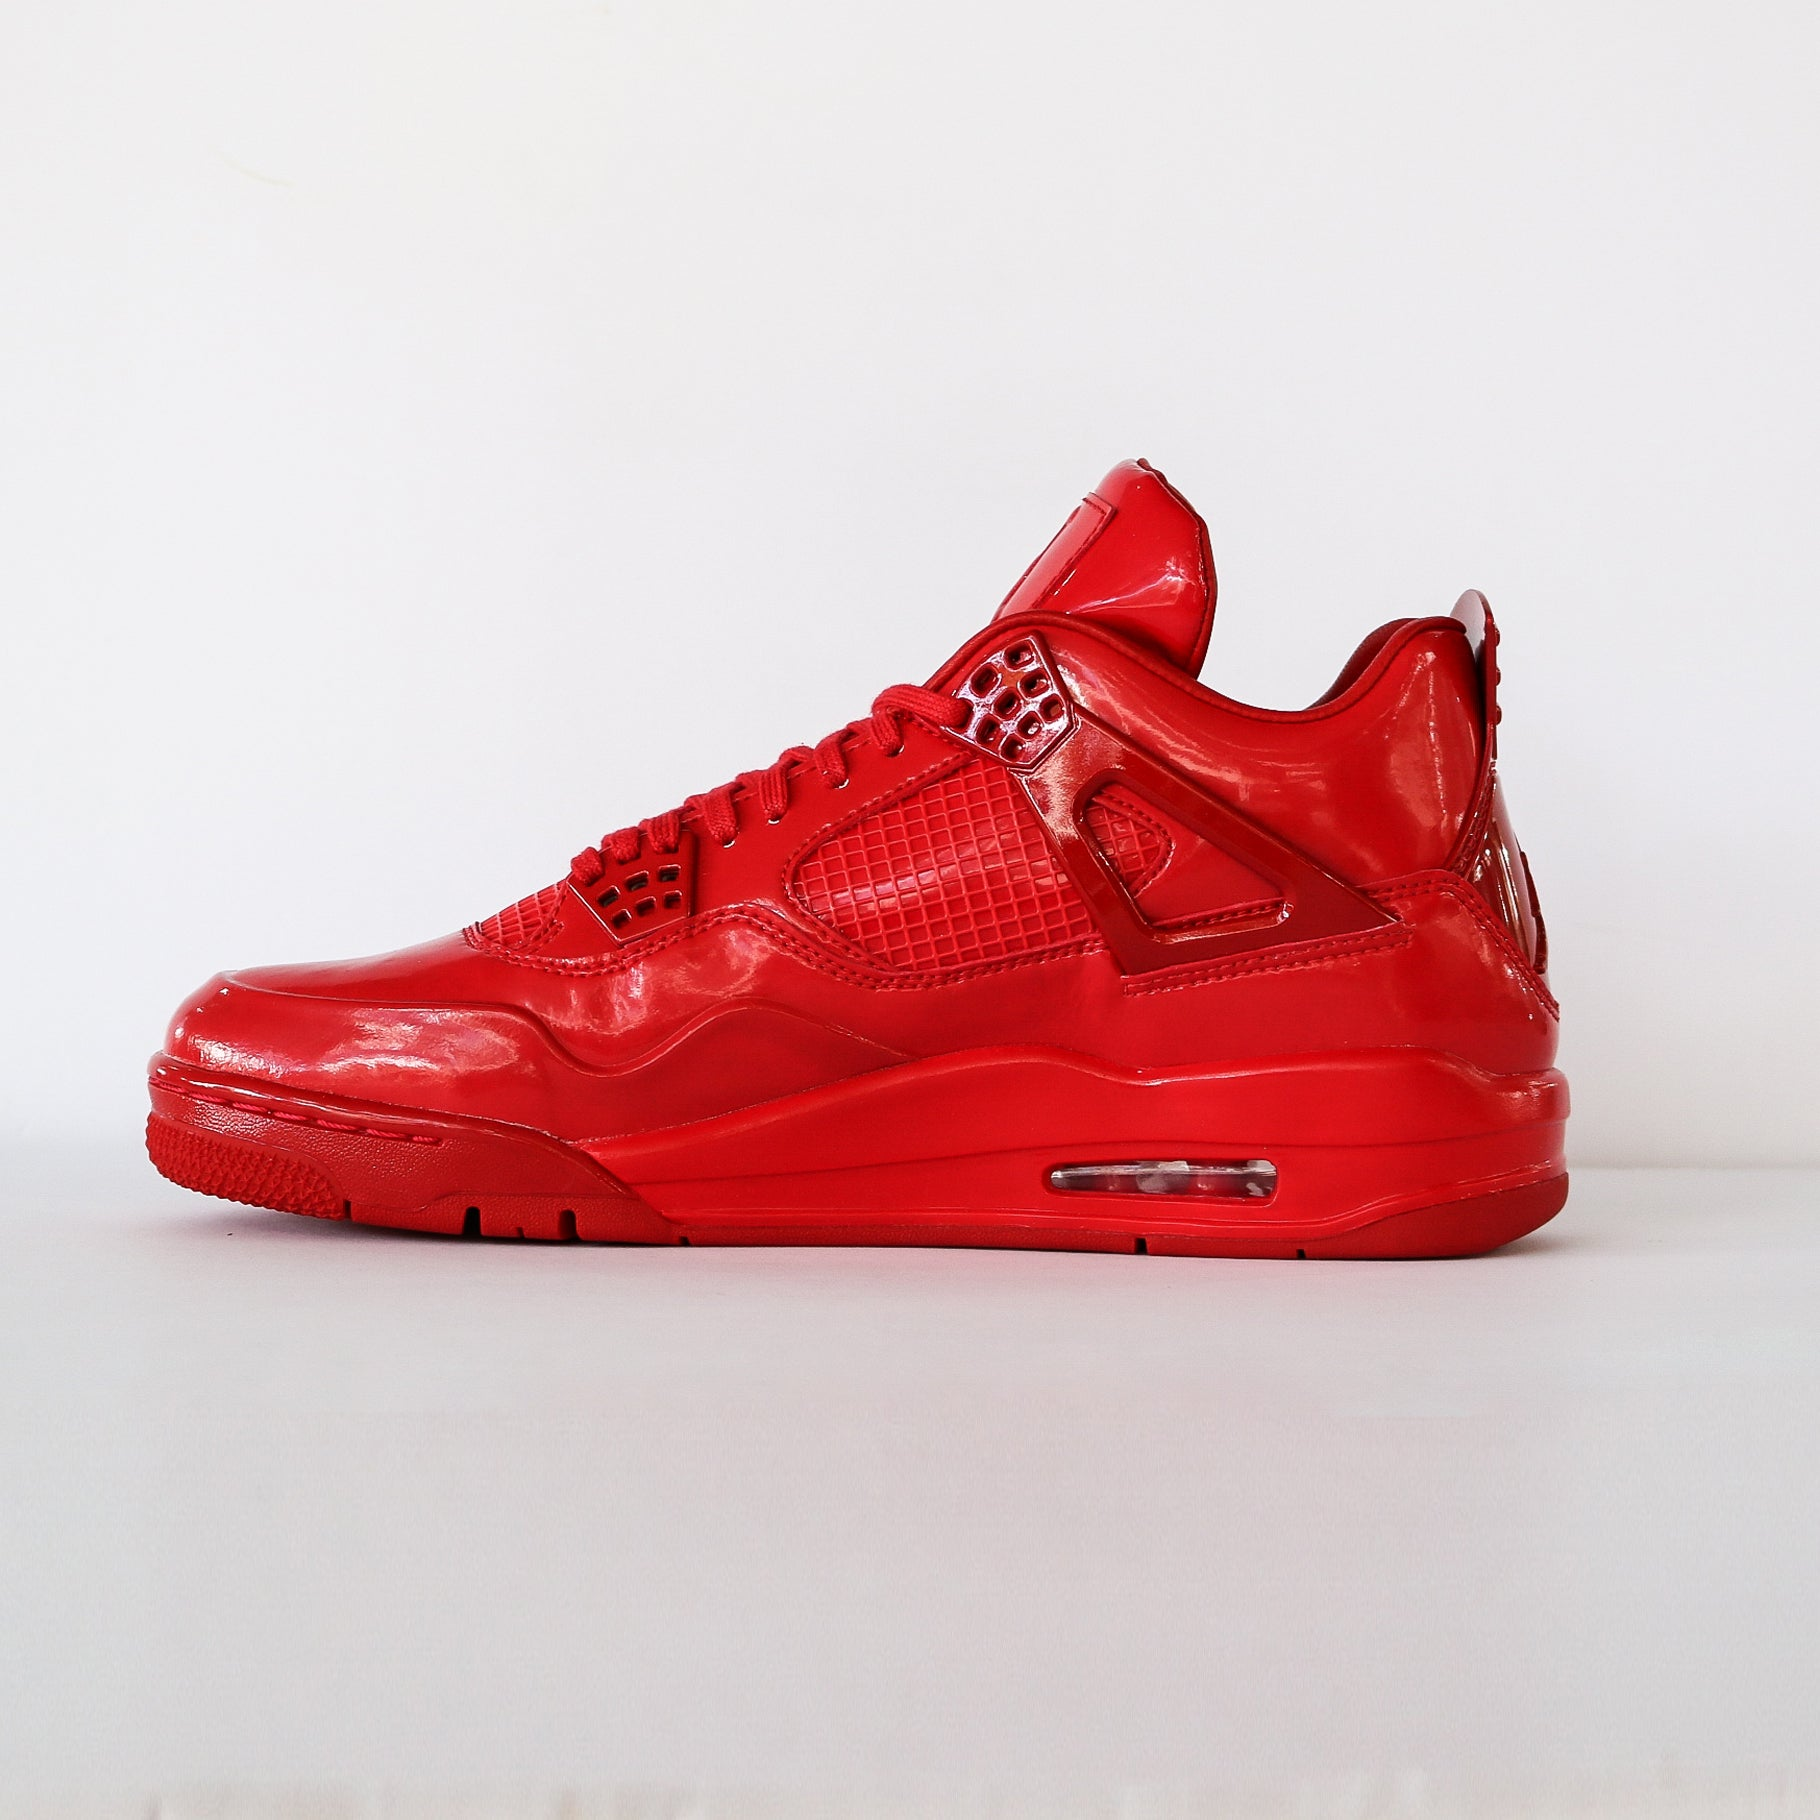 newest 17477 47a39 ... promo code for air jordan 4 retro 11lab4 red 5b5c1 c857a